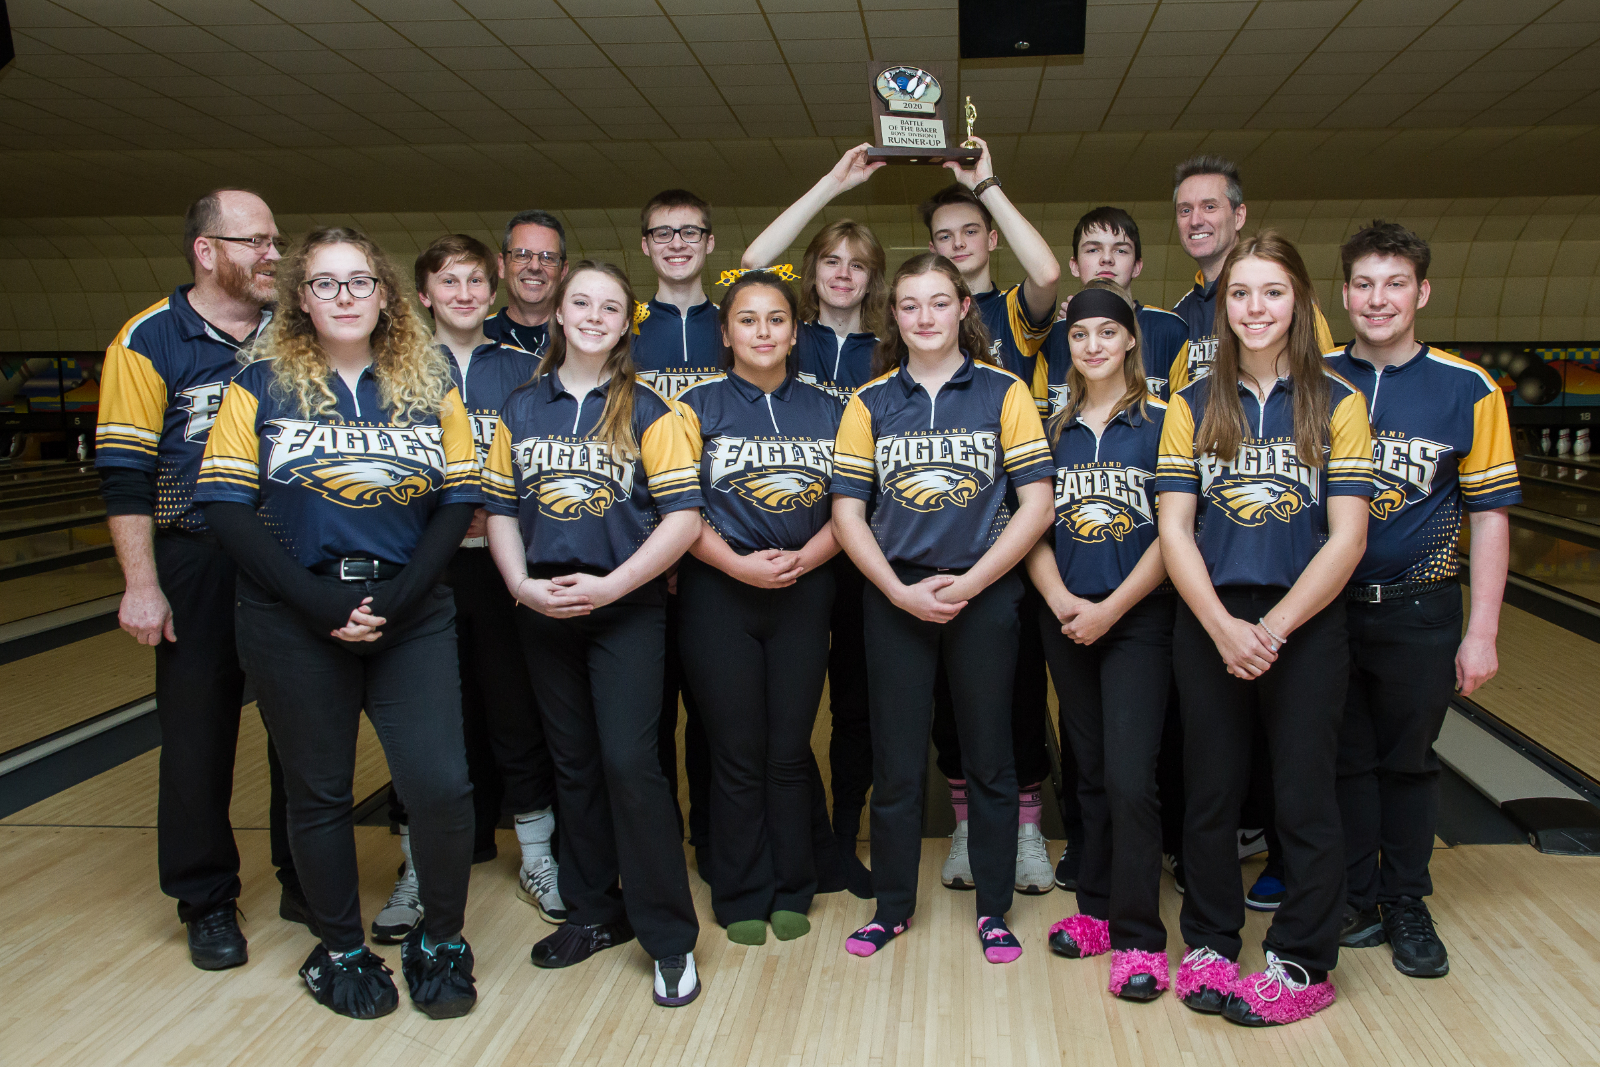 Hartland Bowlers Excel at Battle of the Bakers